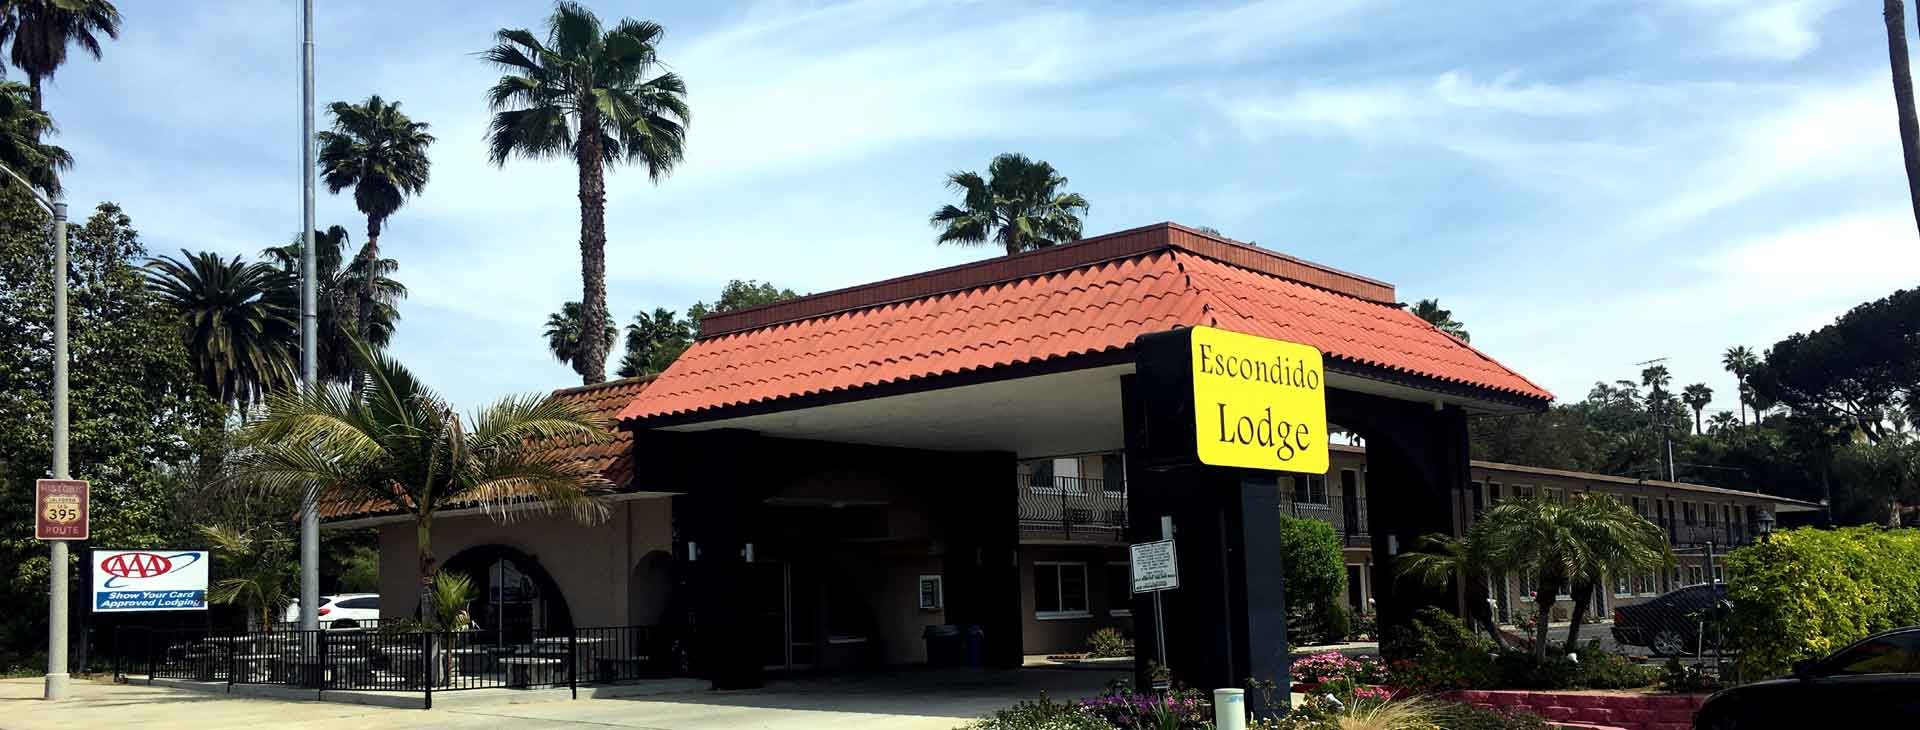 Front of Hotel Escondido Lodge